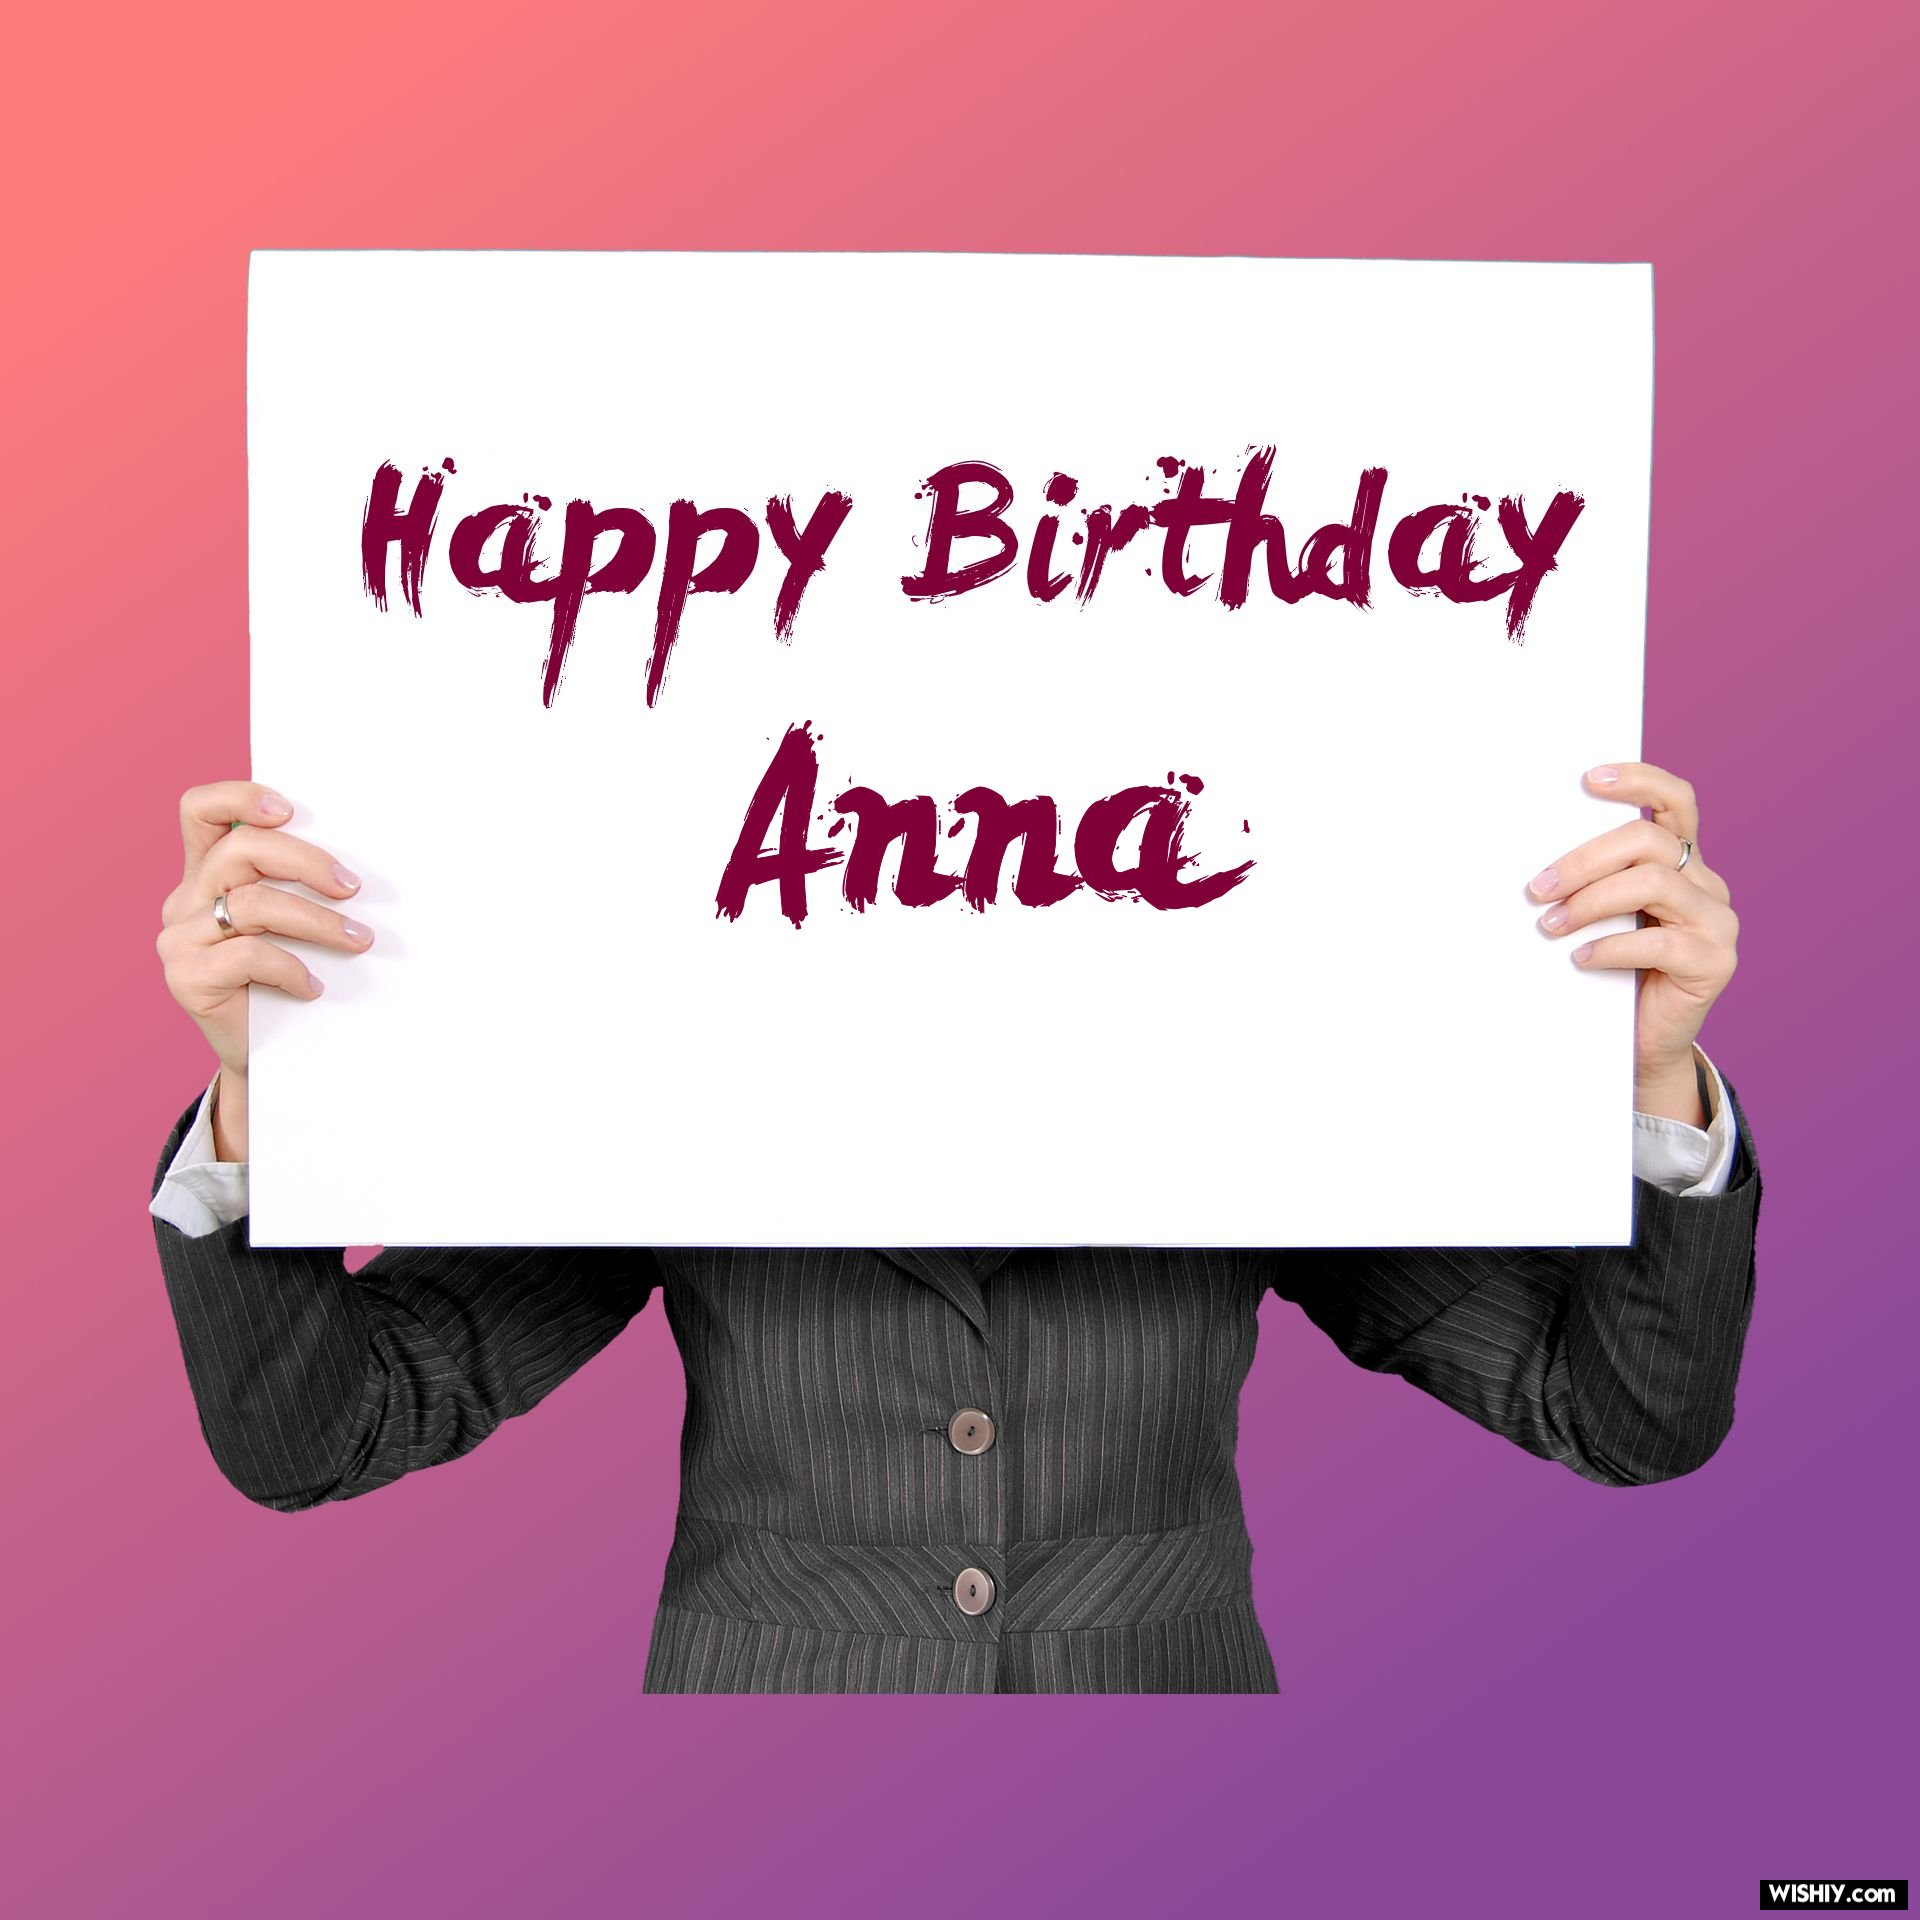 50 Best Birthday Images For Anna Instant Download Wishiy Com